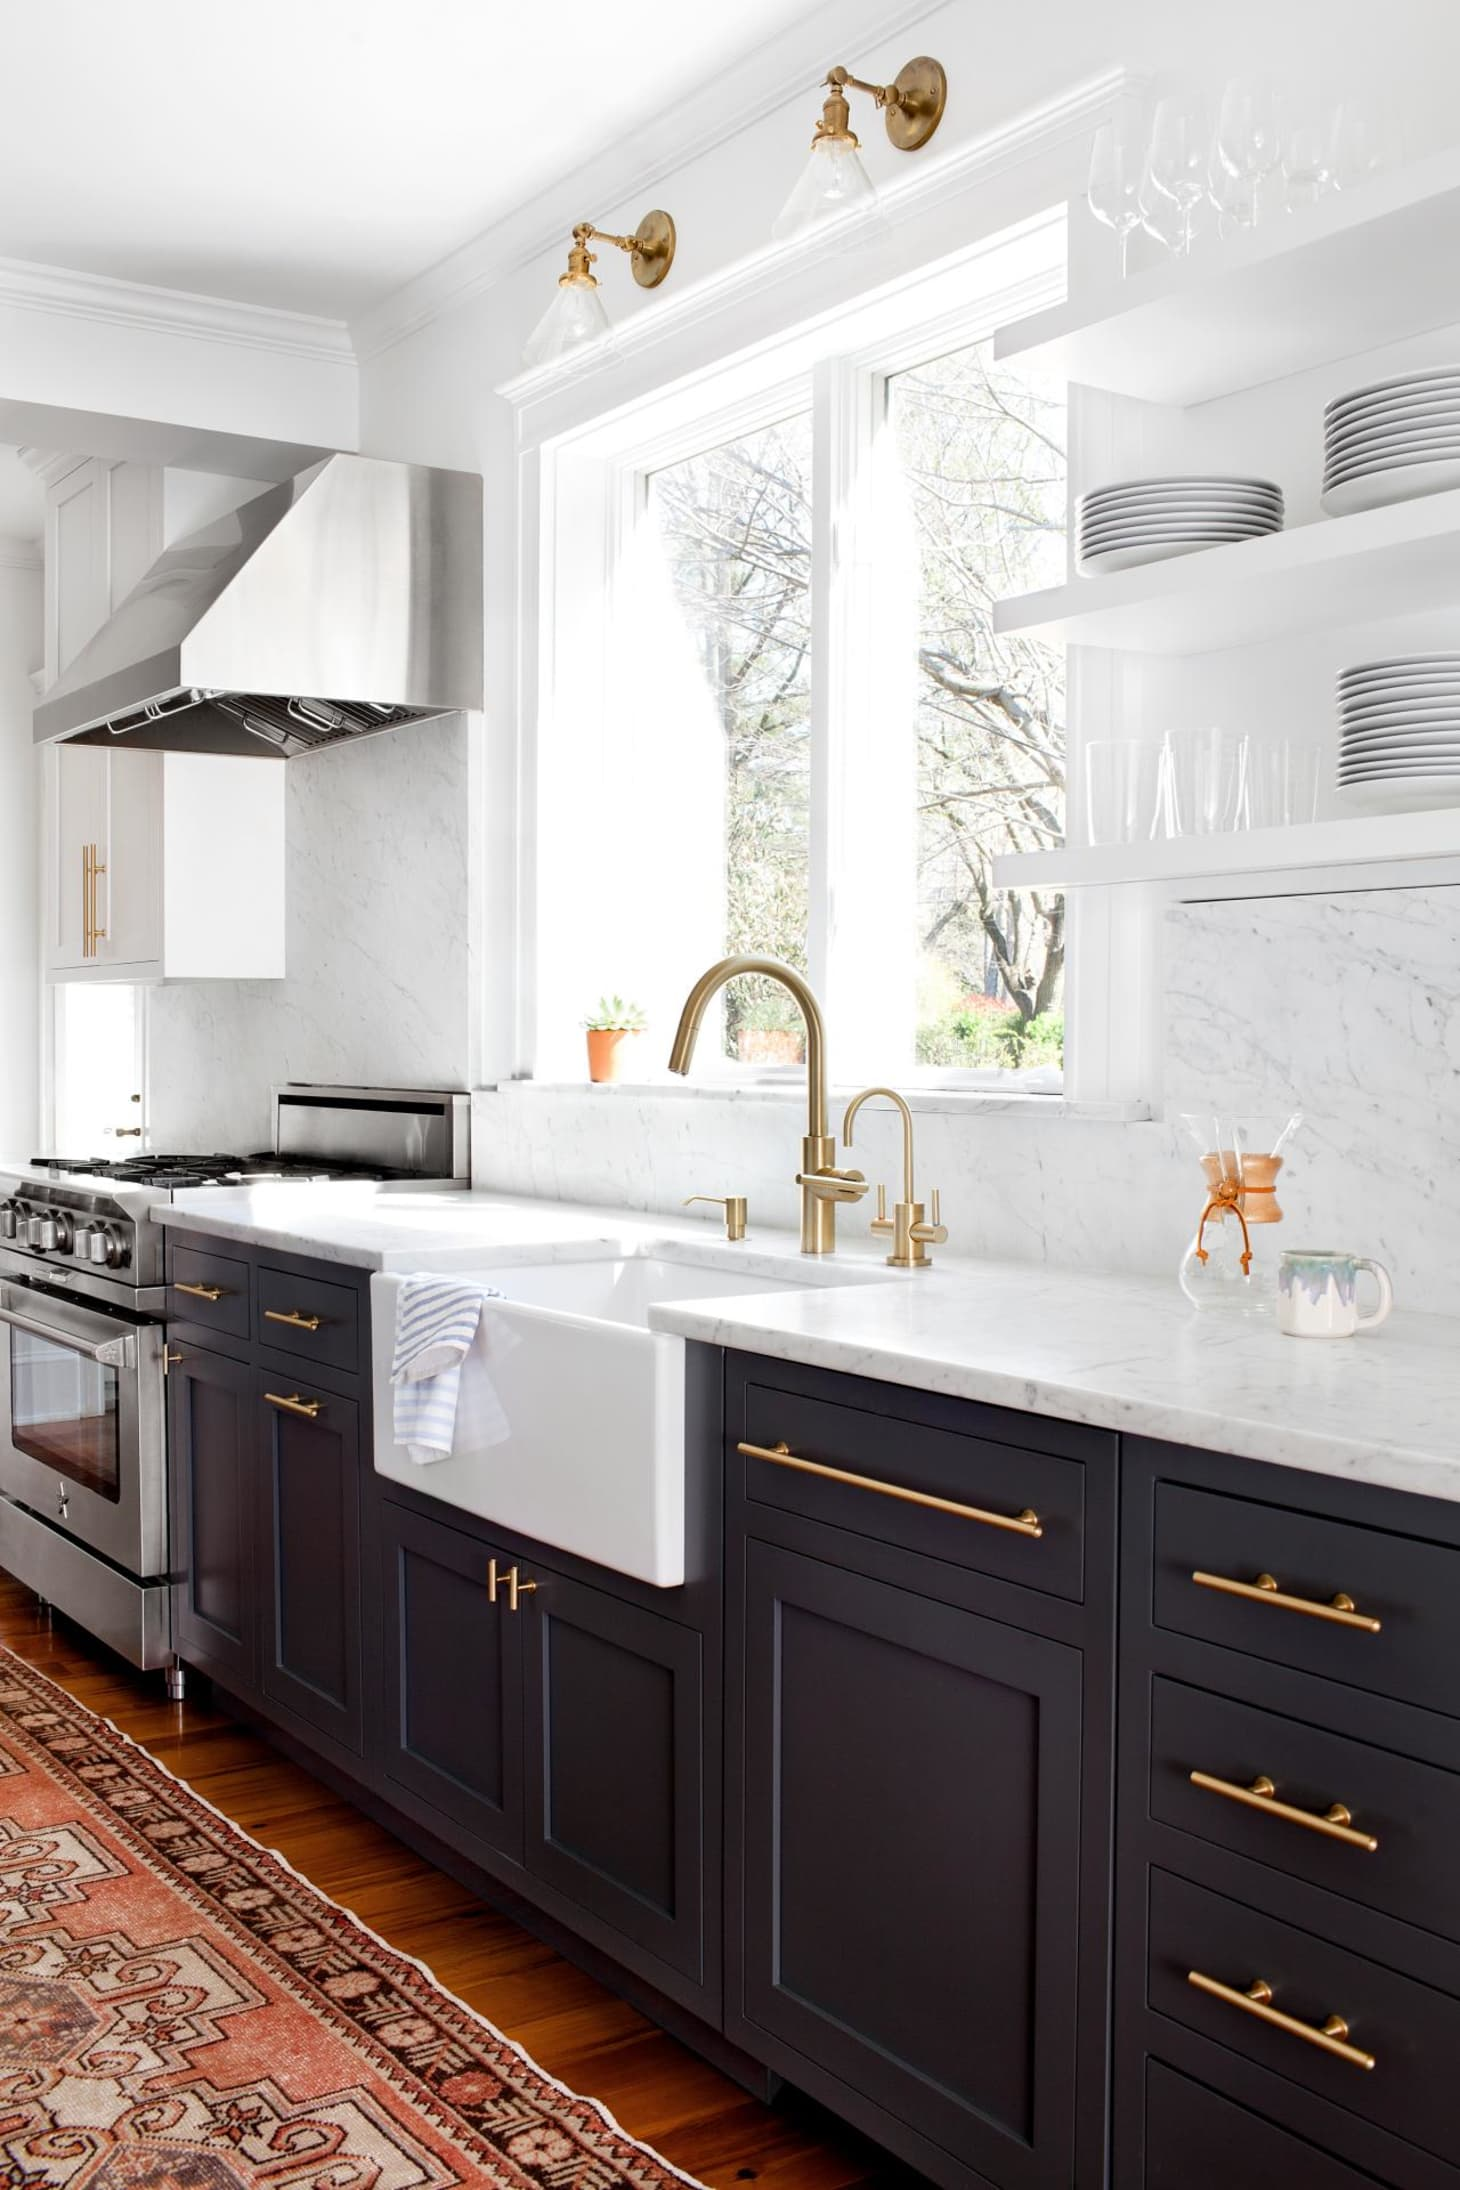 Painting Ideas Two Tone Kitchen Cabinet Colors Apartment Therapy